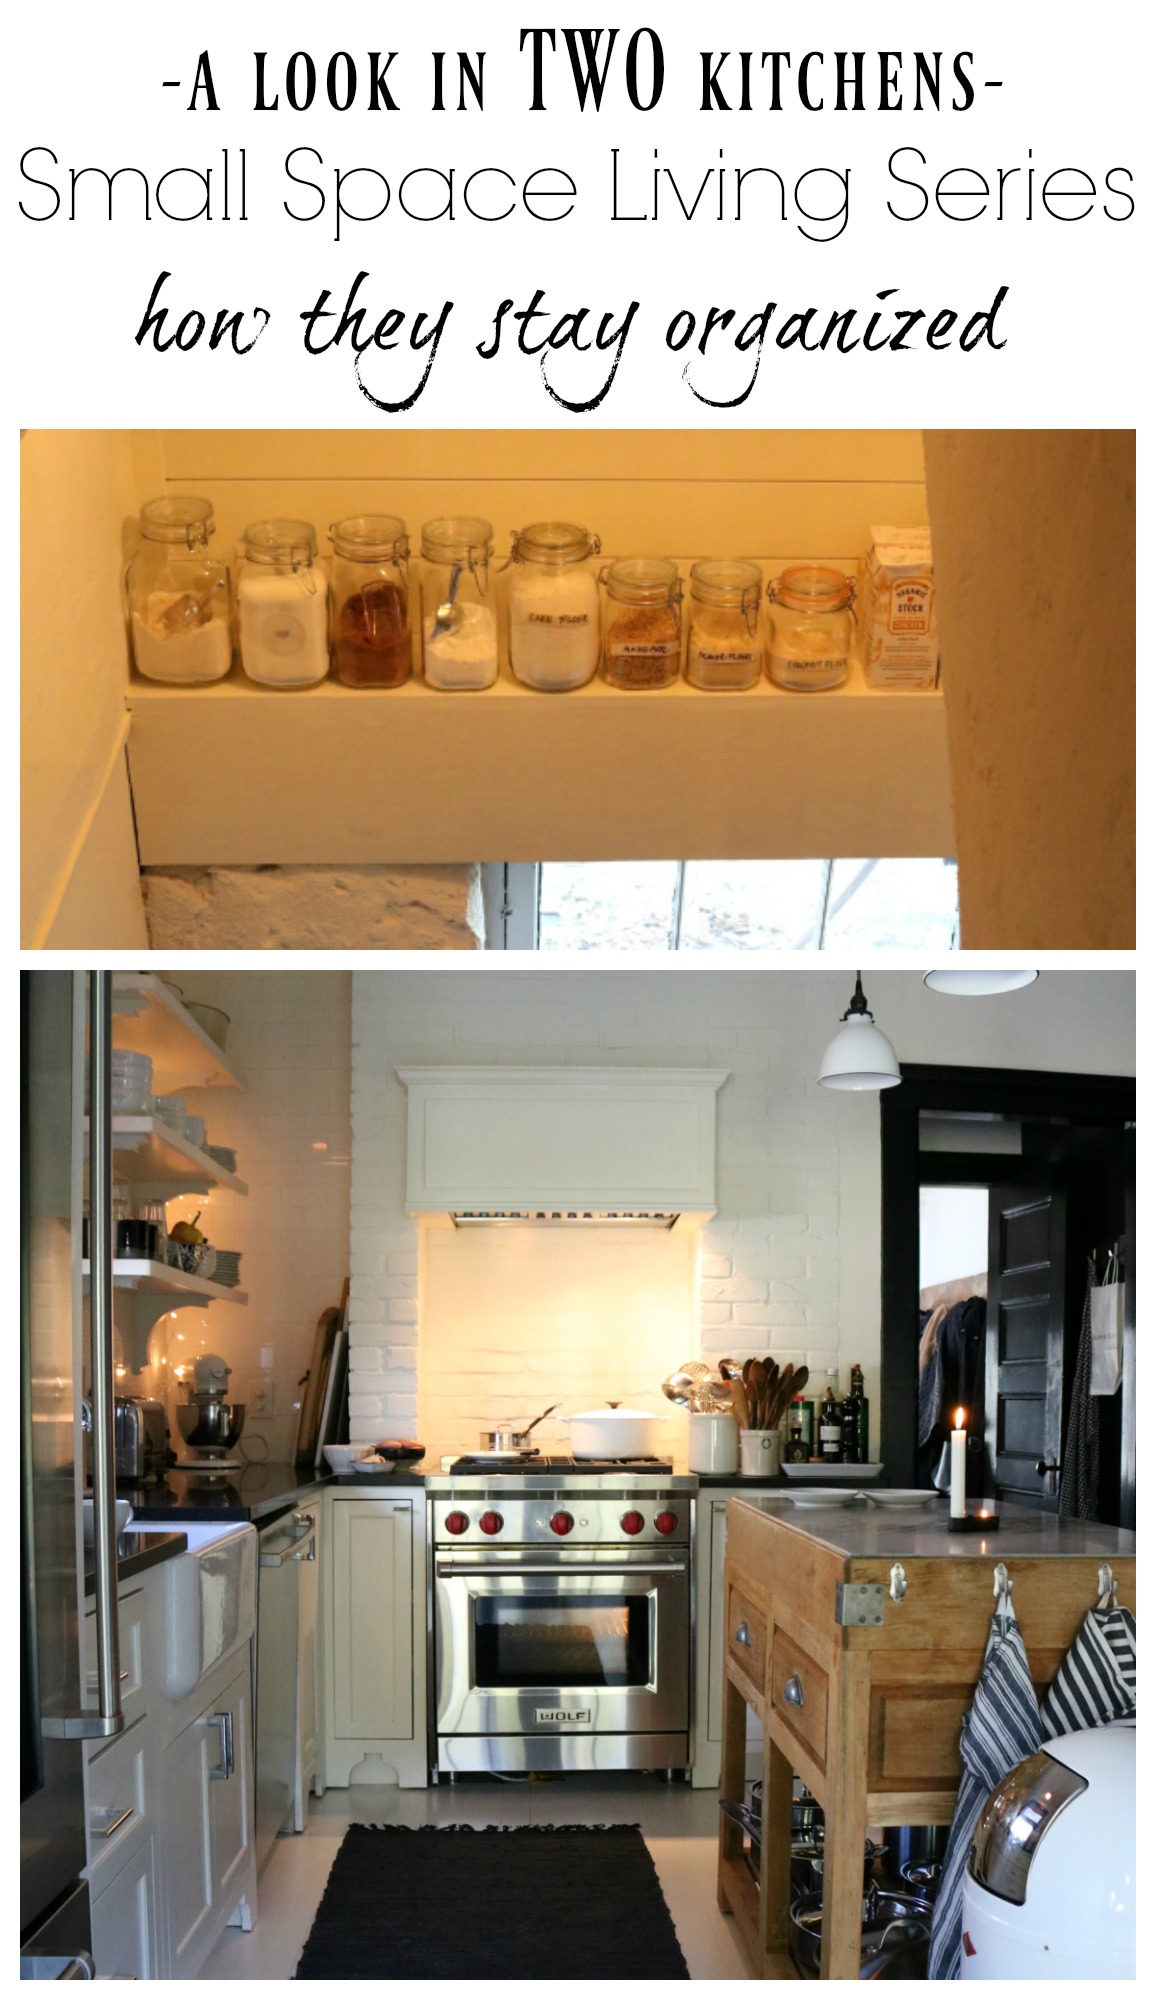 Small Space Living Series  Kitchen Organizing Tips